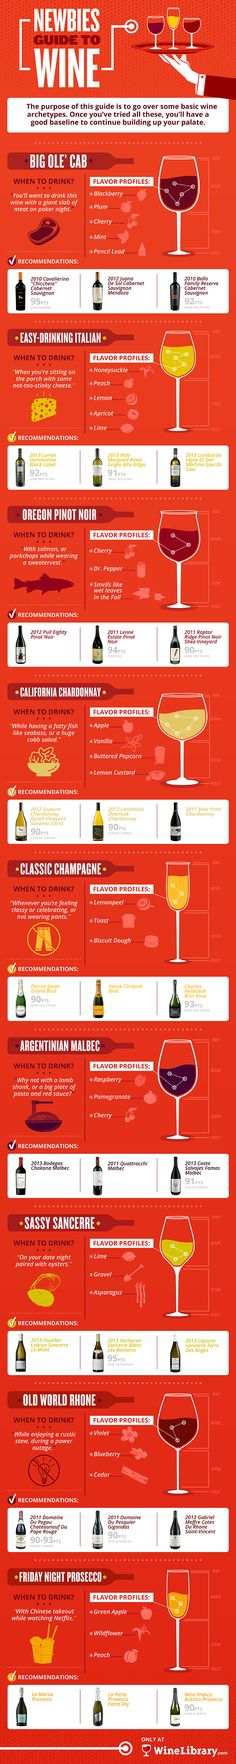 Newbies Guide to Wine #infografía